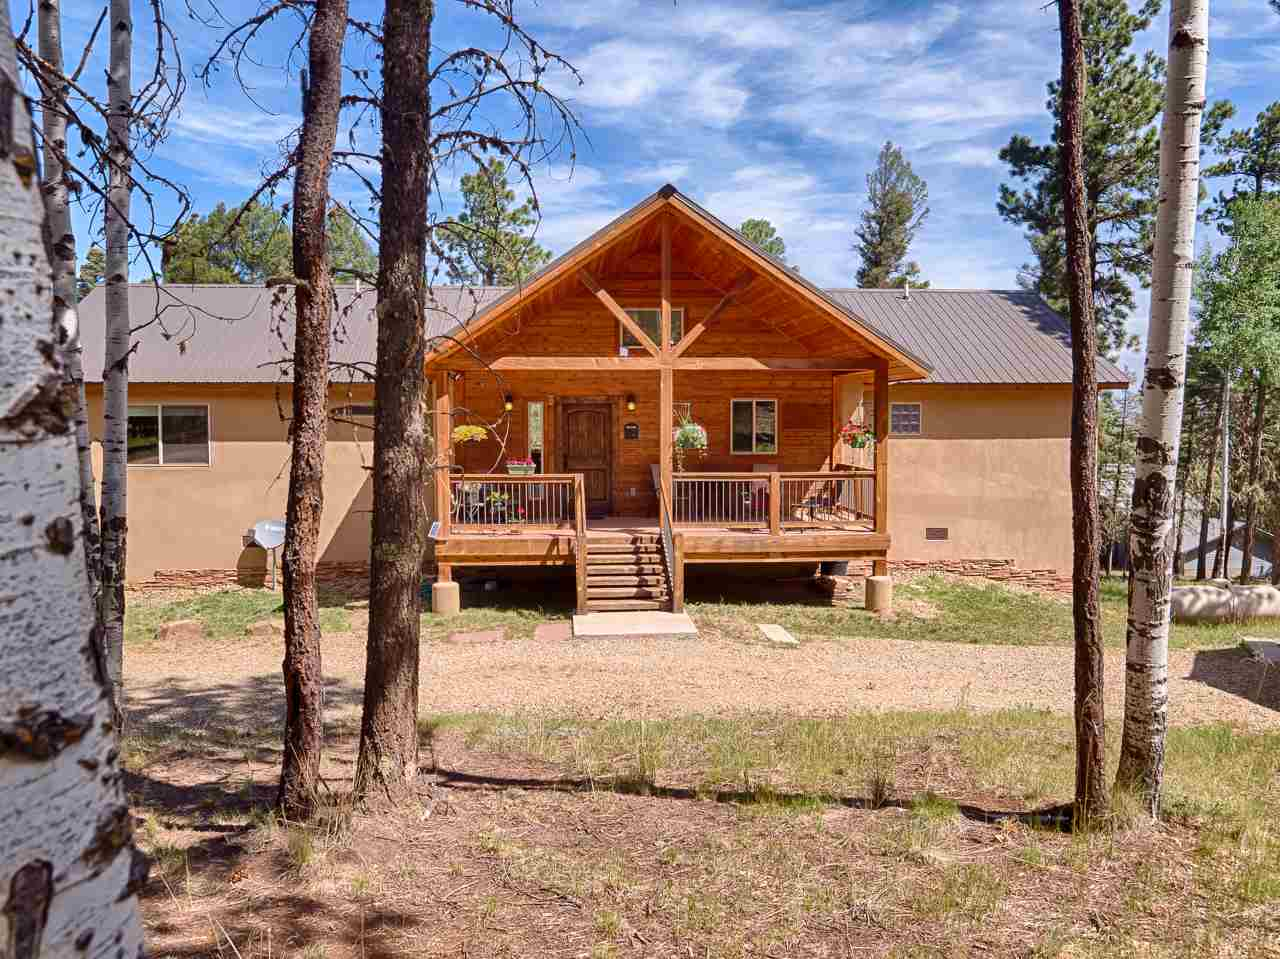 47 Camino Real, Angel Fire, NM 87710